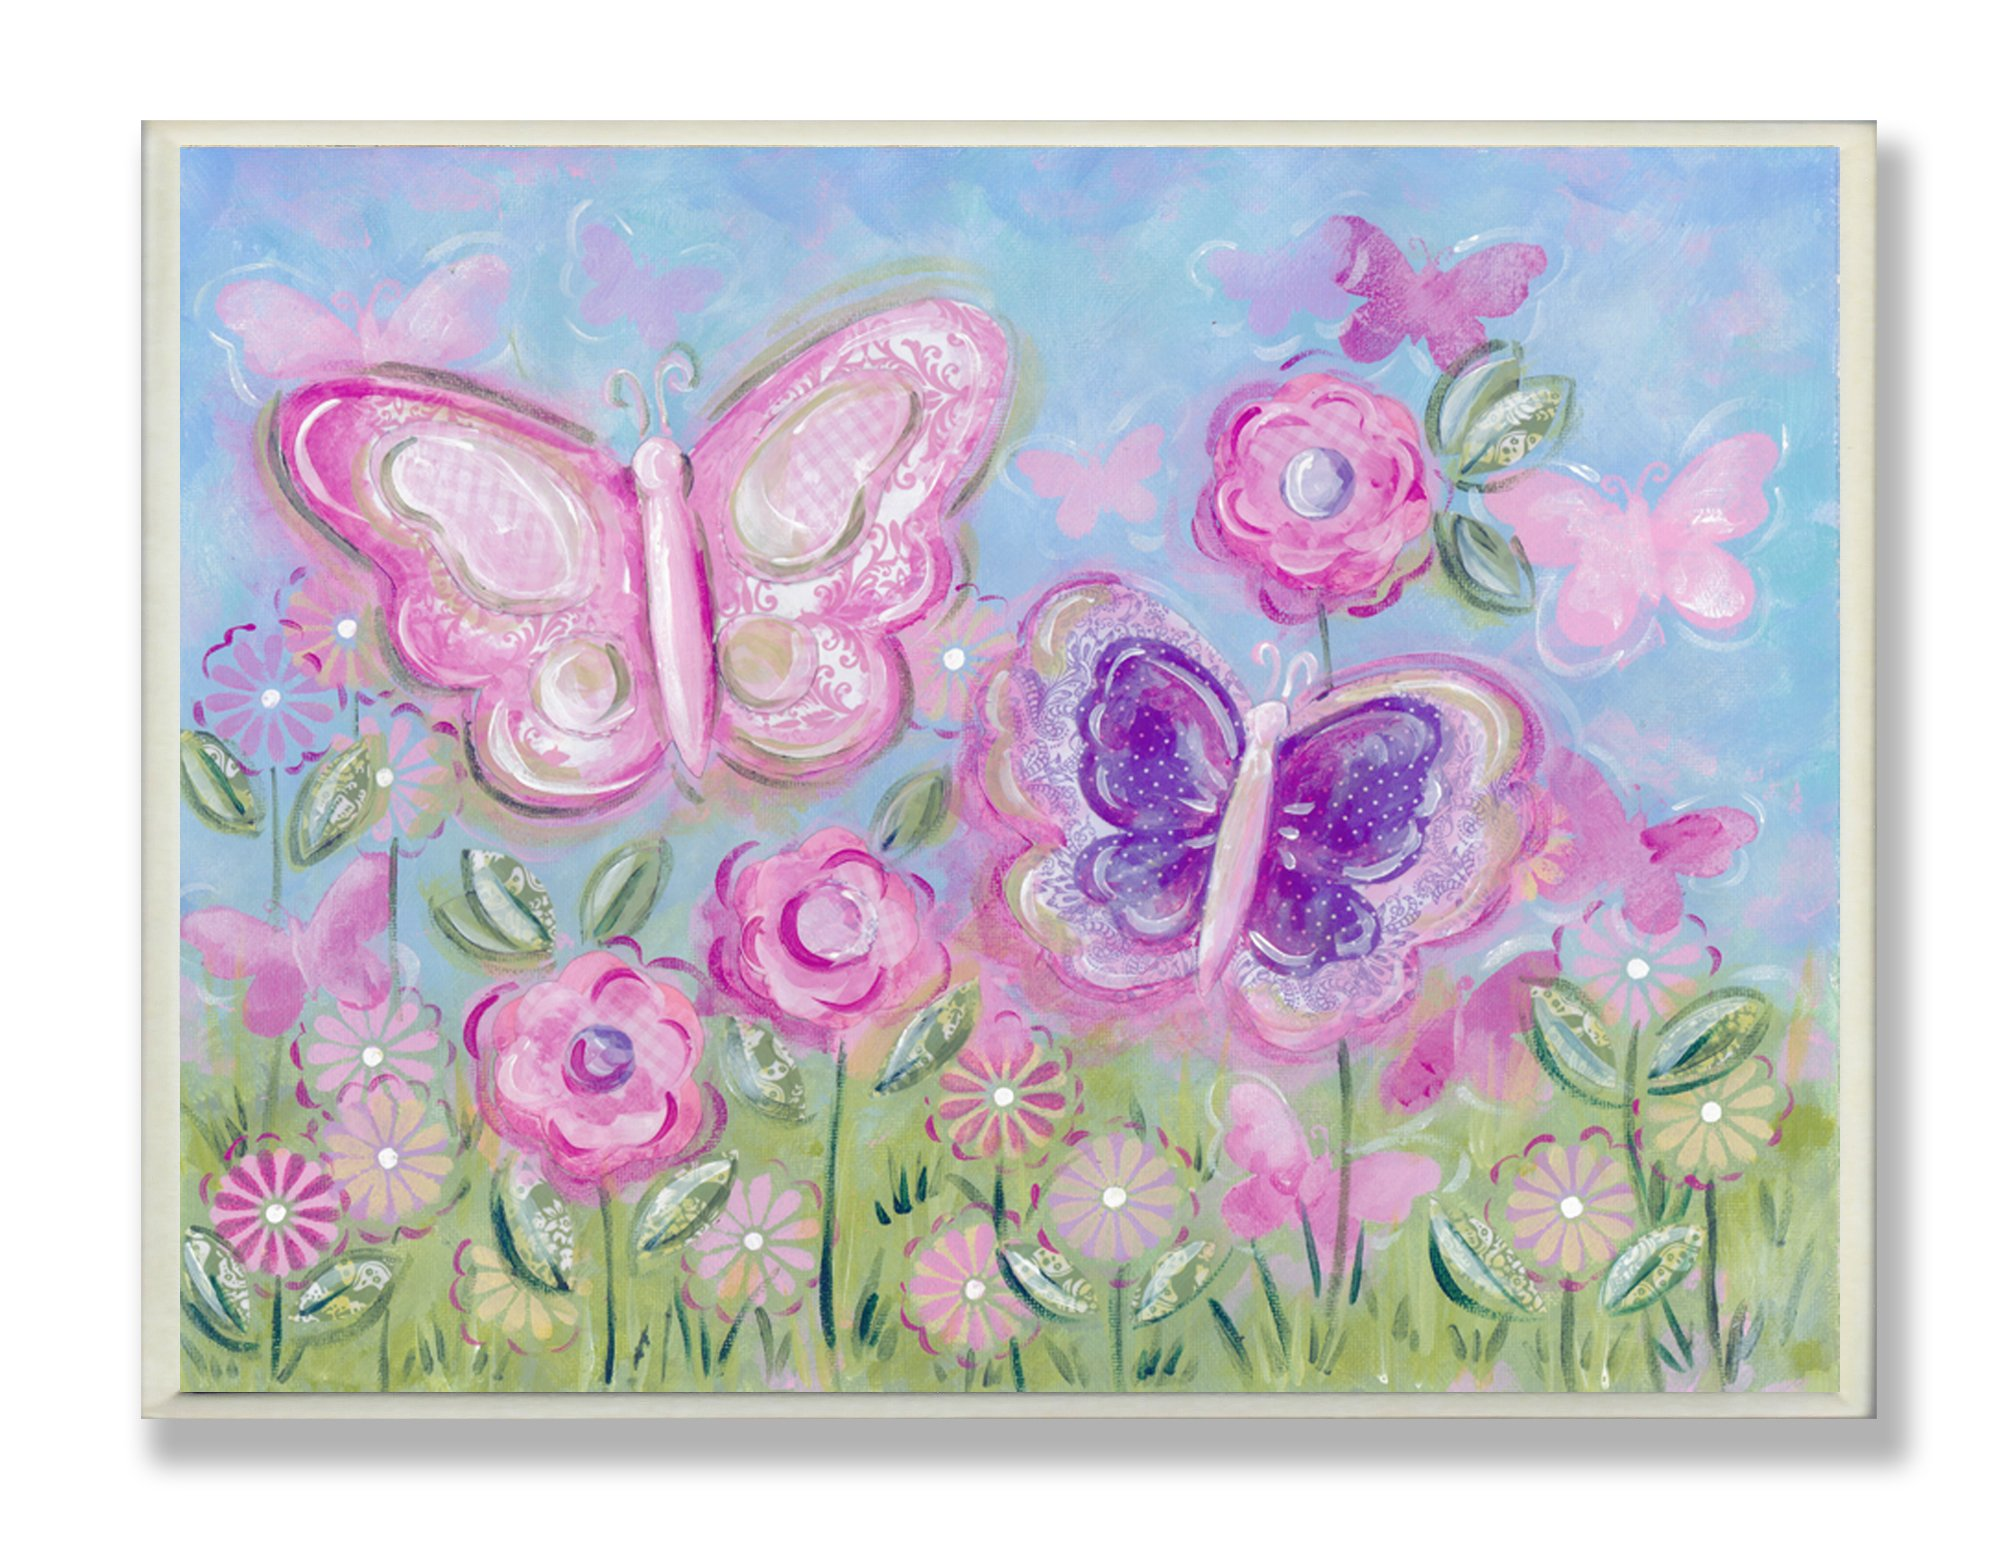 The Kids Room by Stupell Pastel Butterflies in a Garden Rectangle Wall Plaque by The Kids Room by Stupell